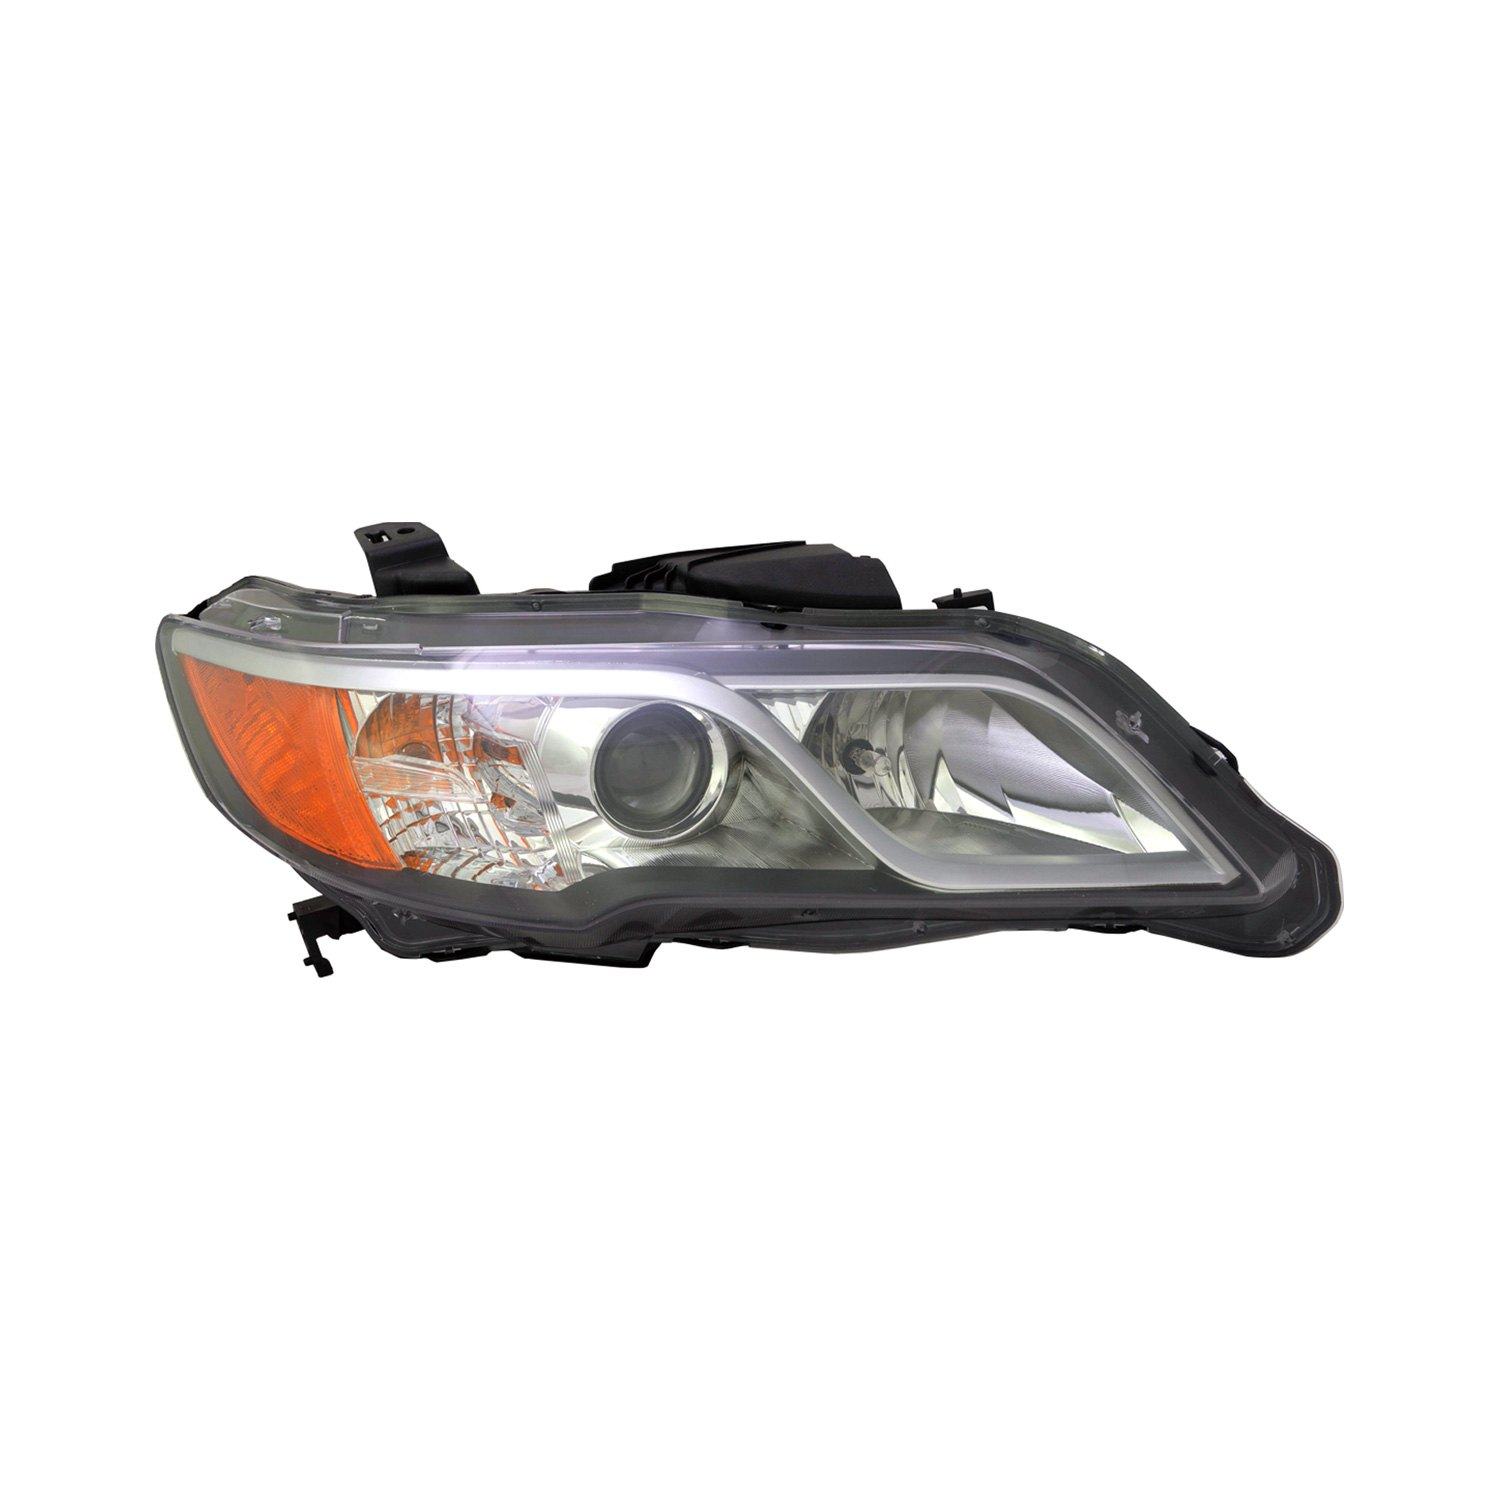 [How To Replace 2008 Acura Rdx Headlight Lens]